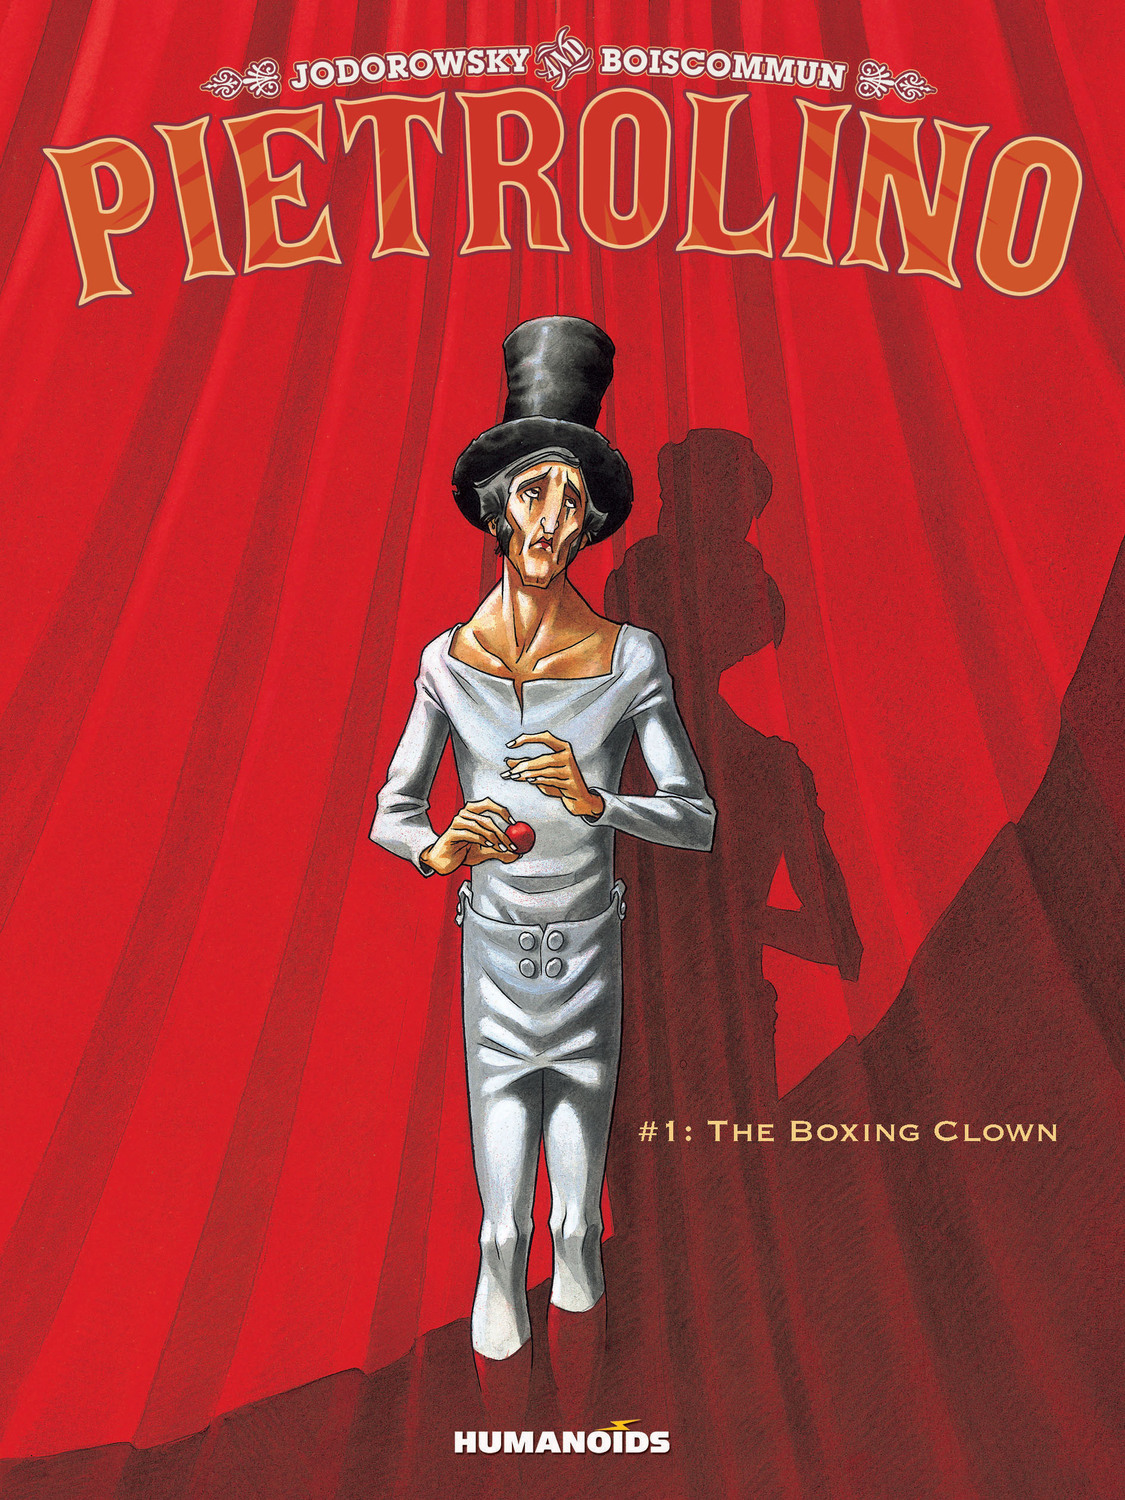 Pietrolino #1 : The Boxing Clown - Digital Comic